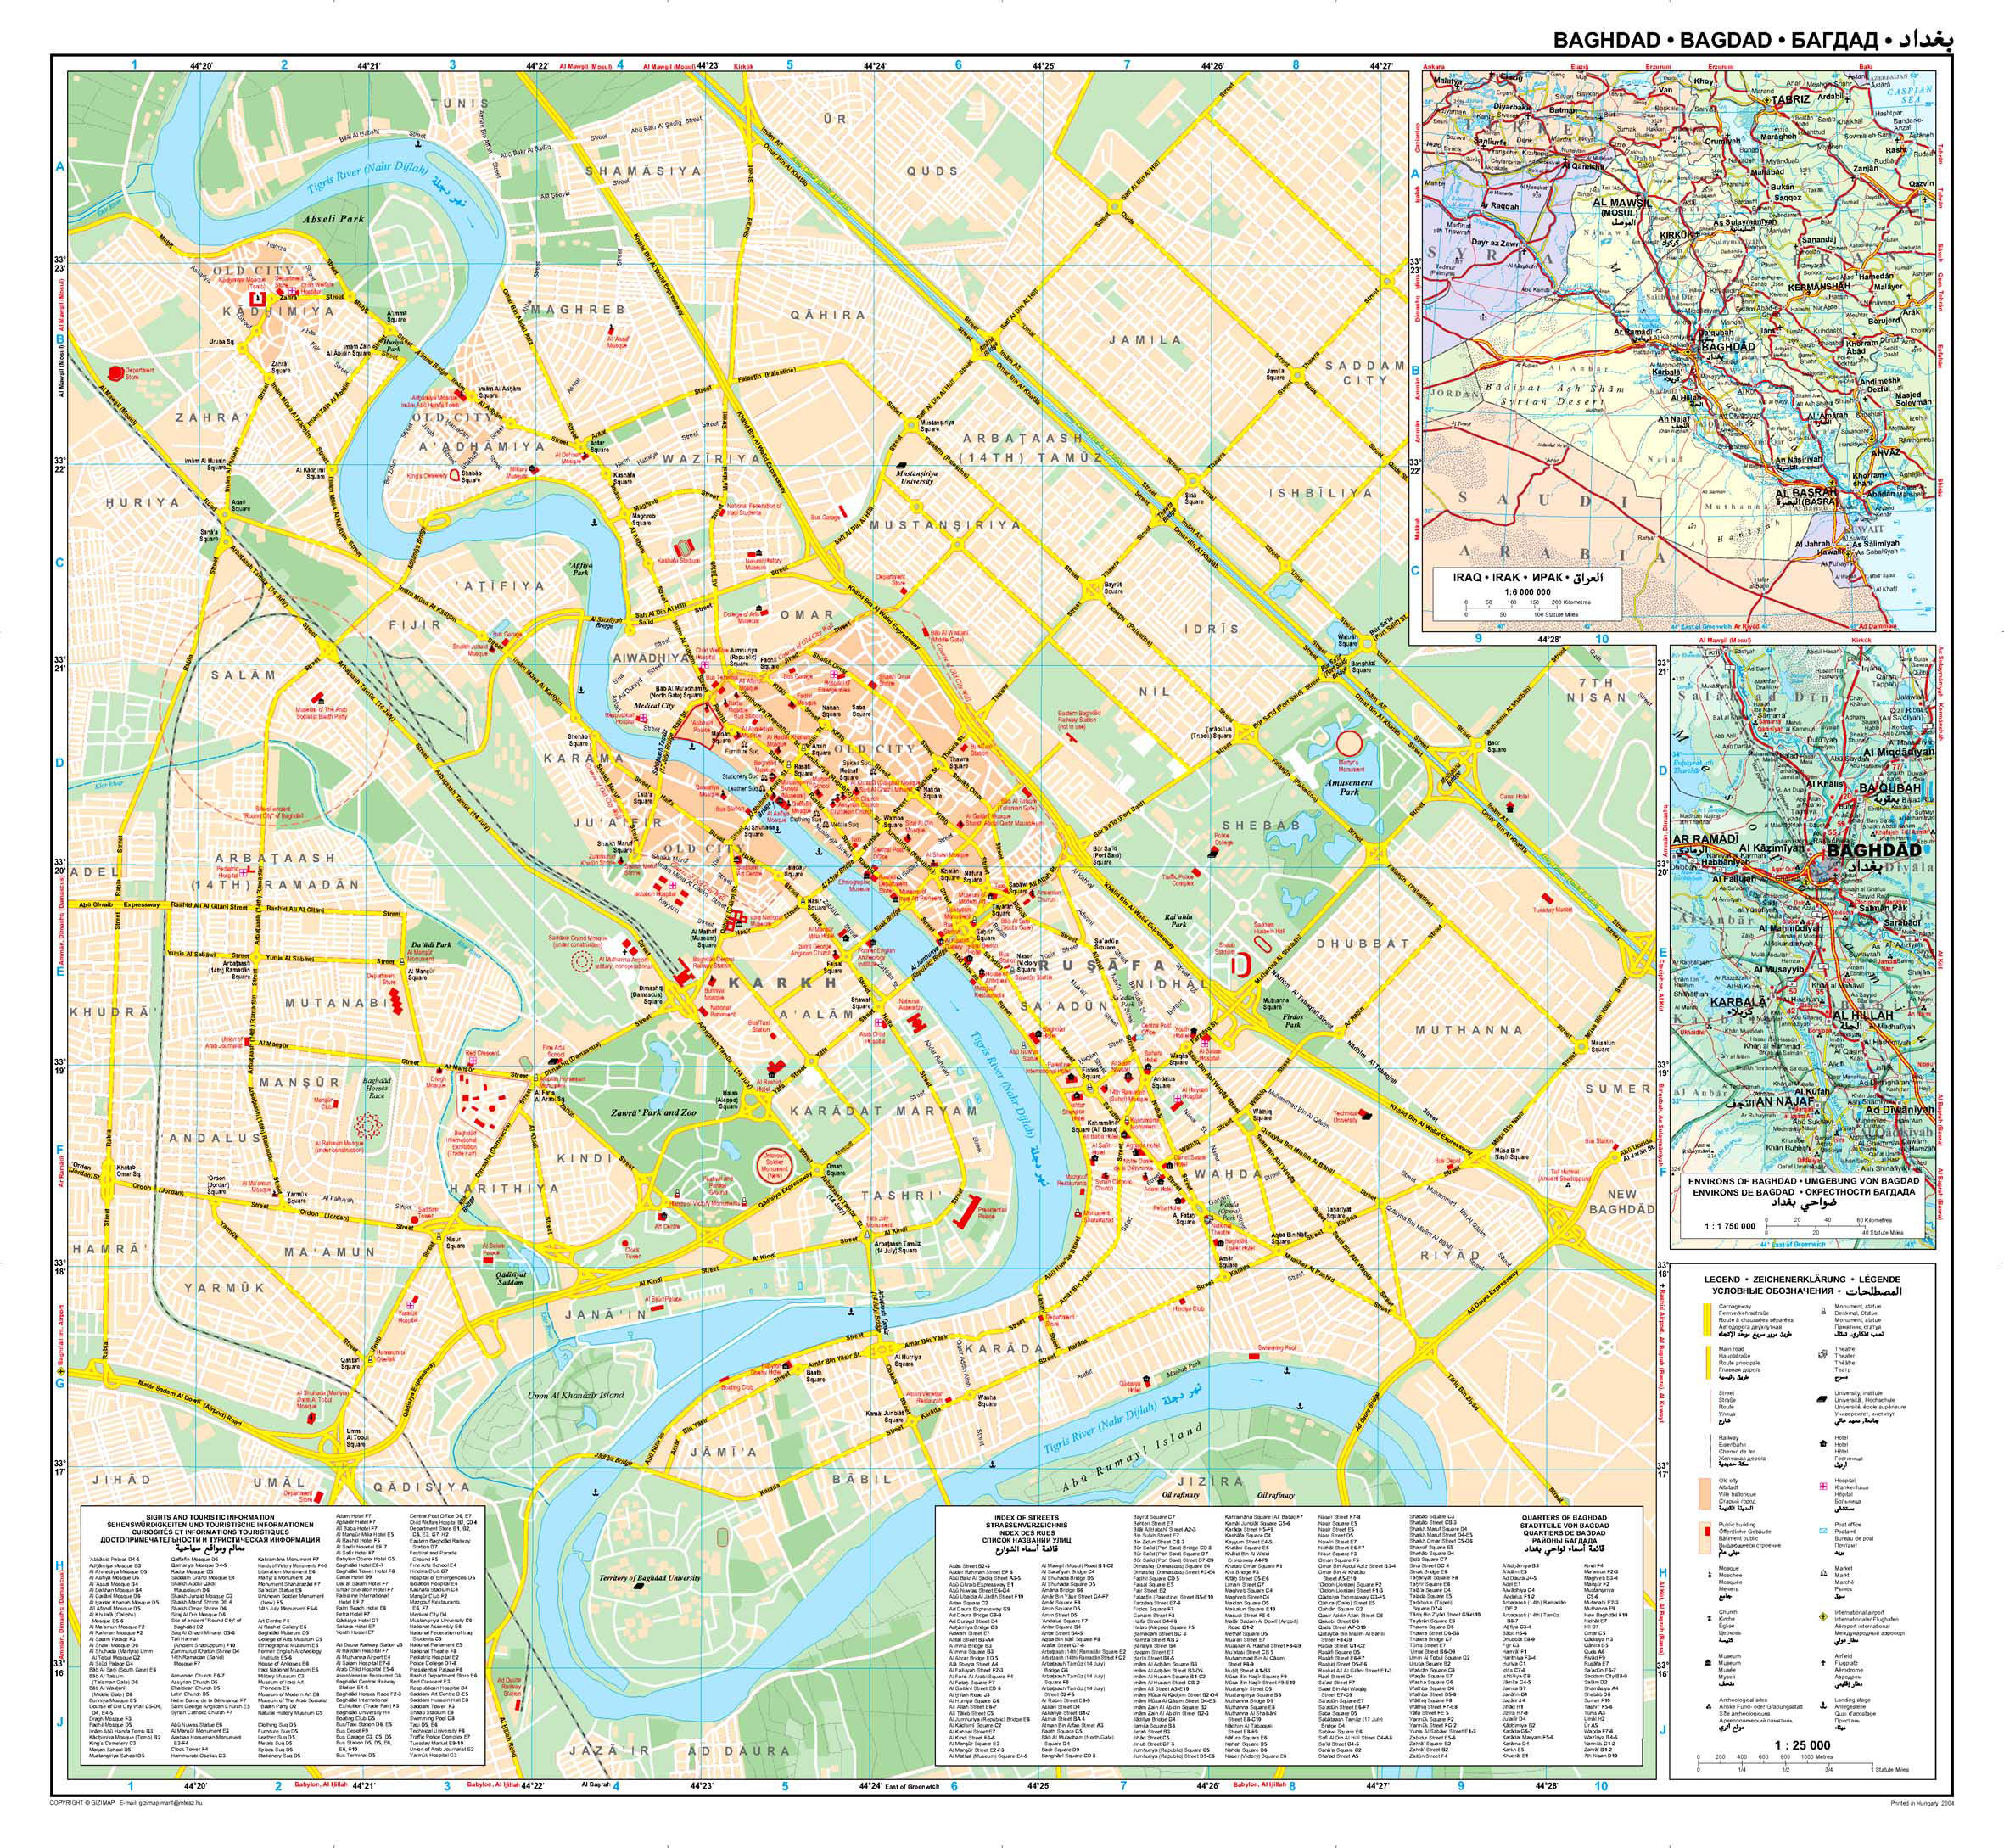 Large Road Map Of Baghdad City Baghdad Iraq Asia Mapsland - Baghdad map world